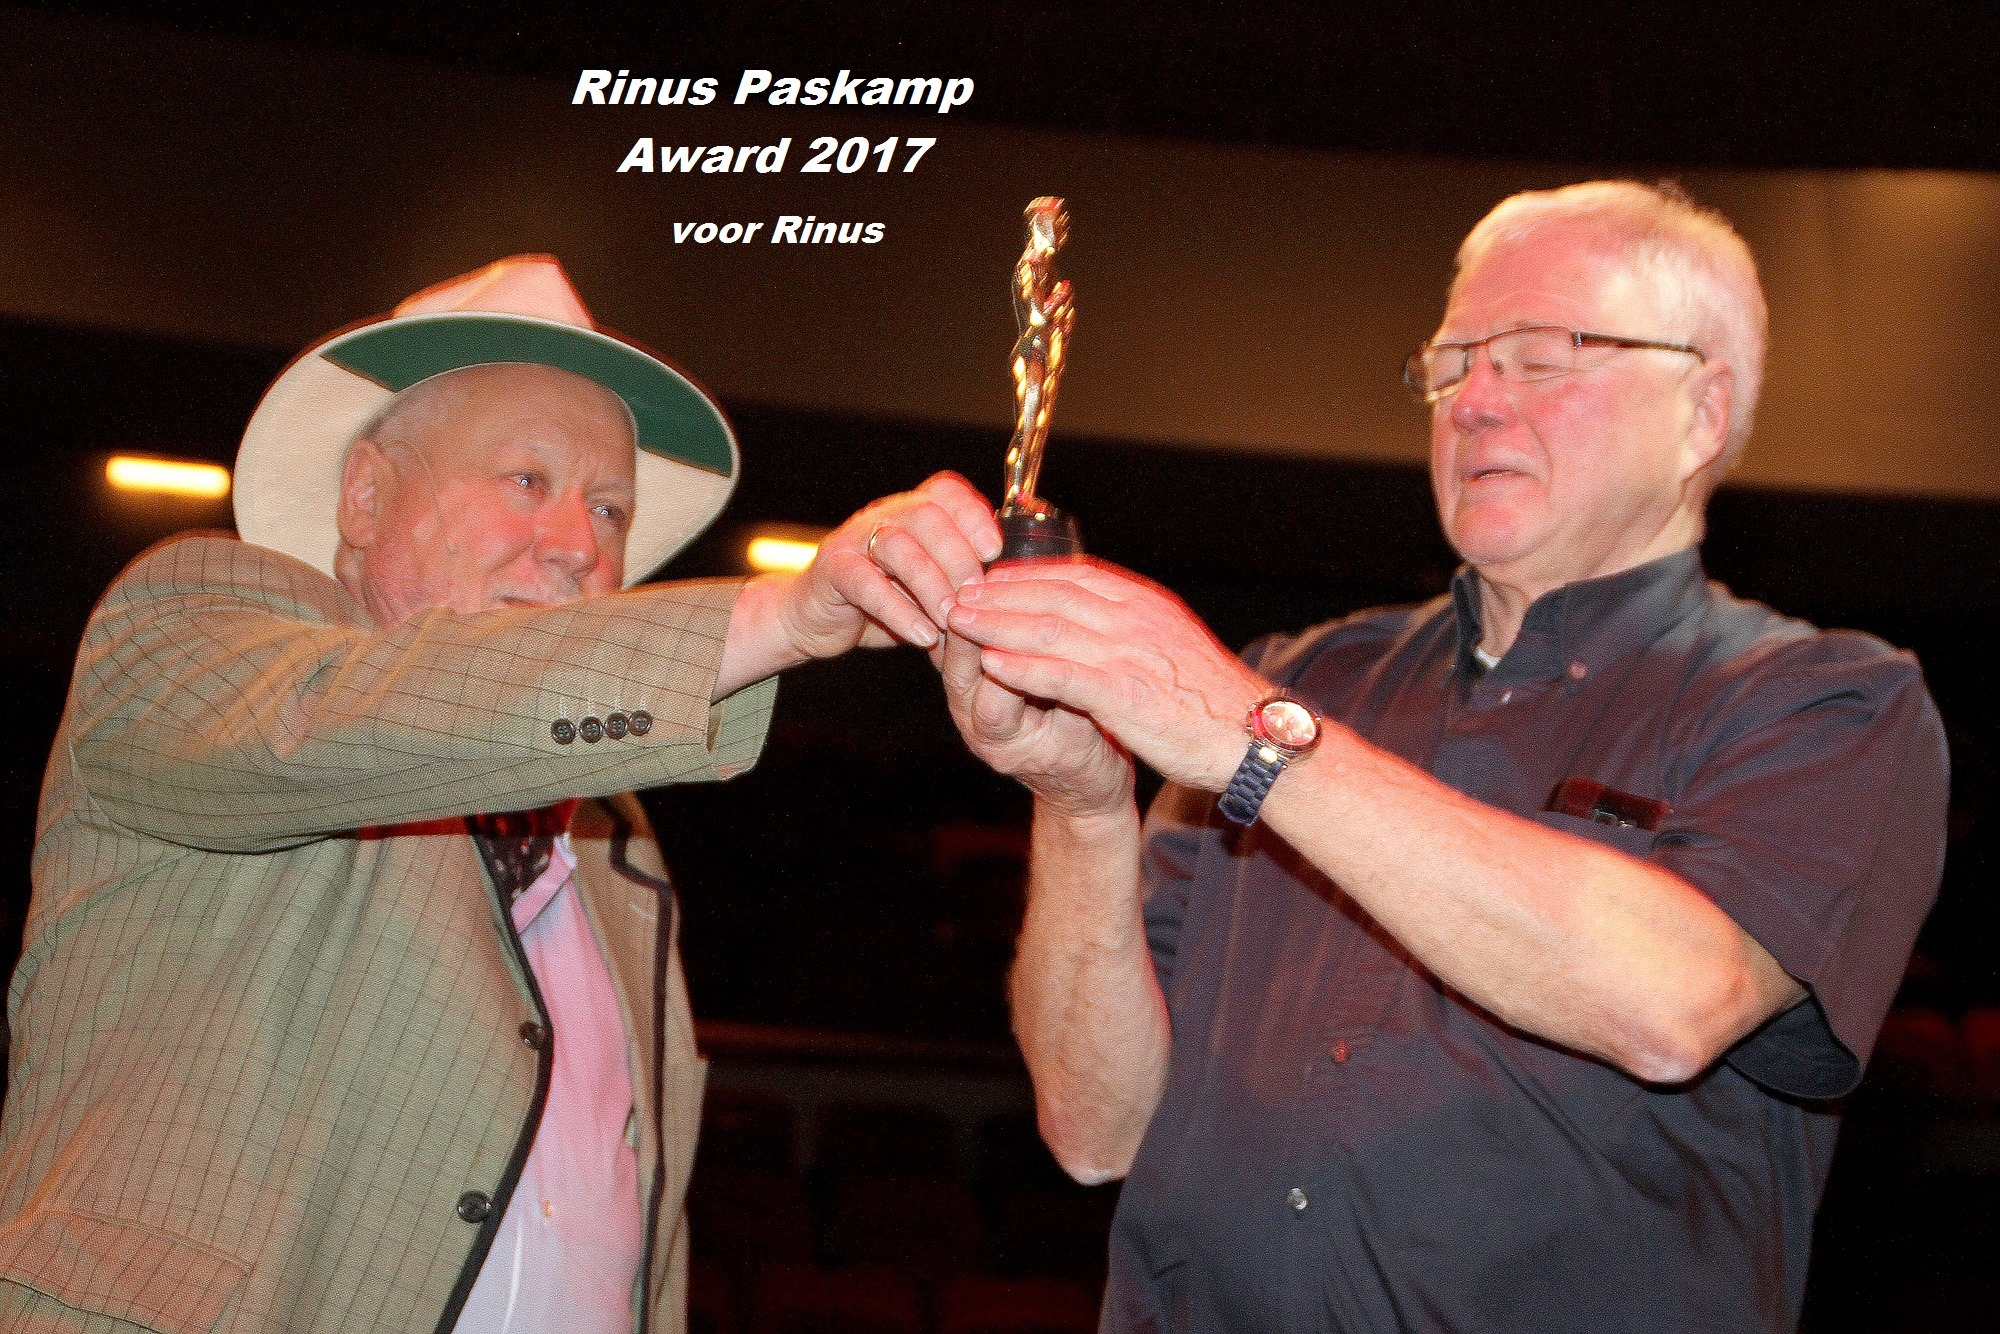 Rinus Paskamp Award